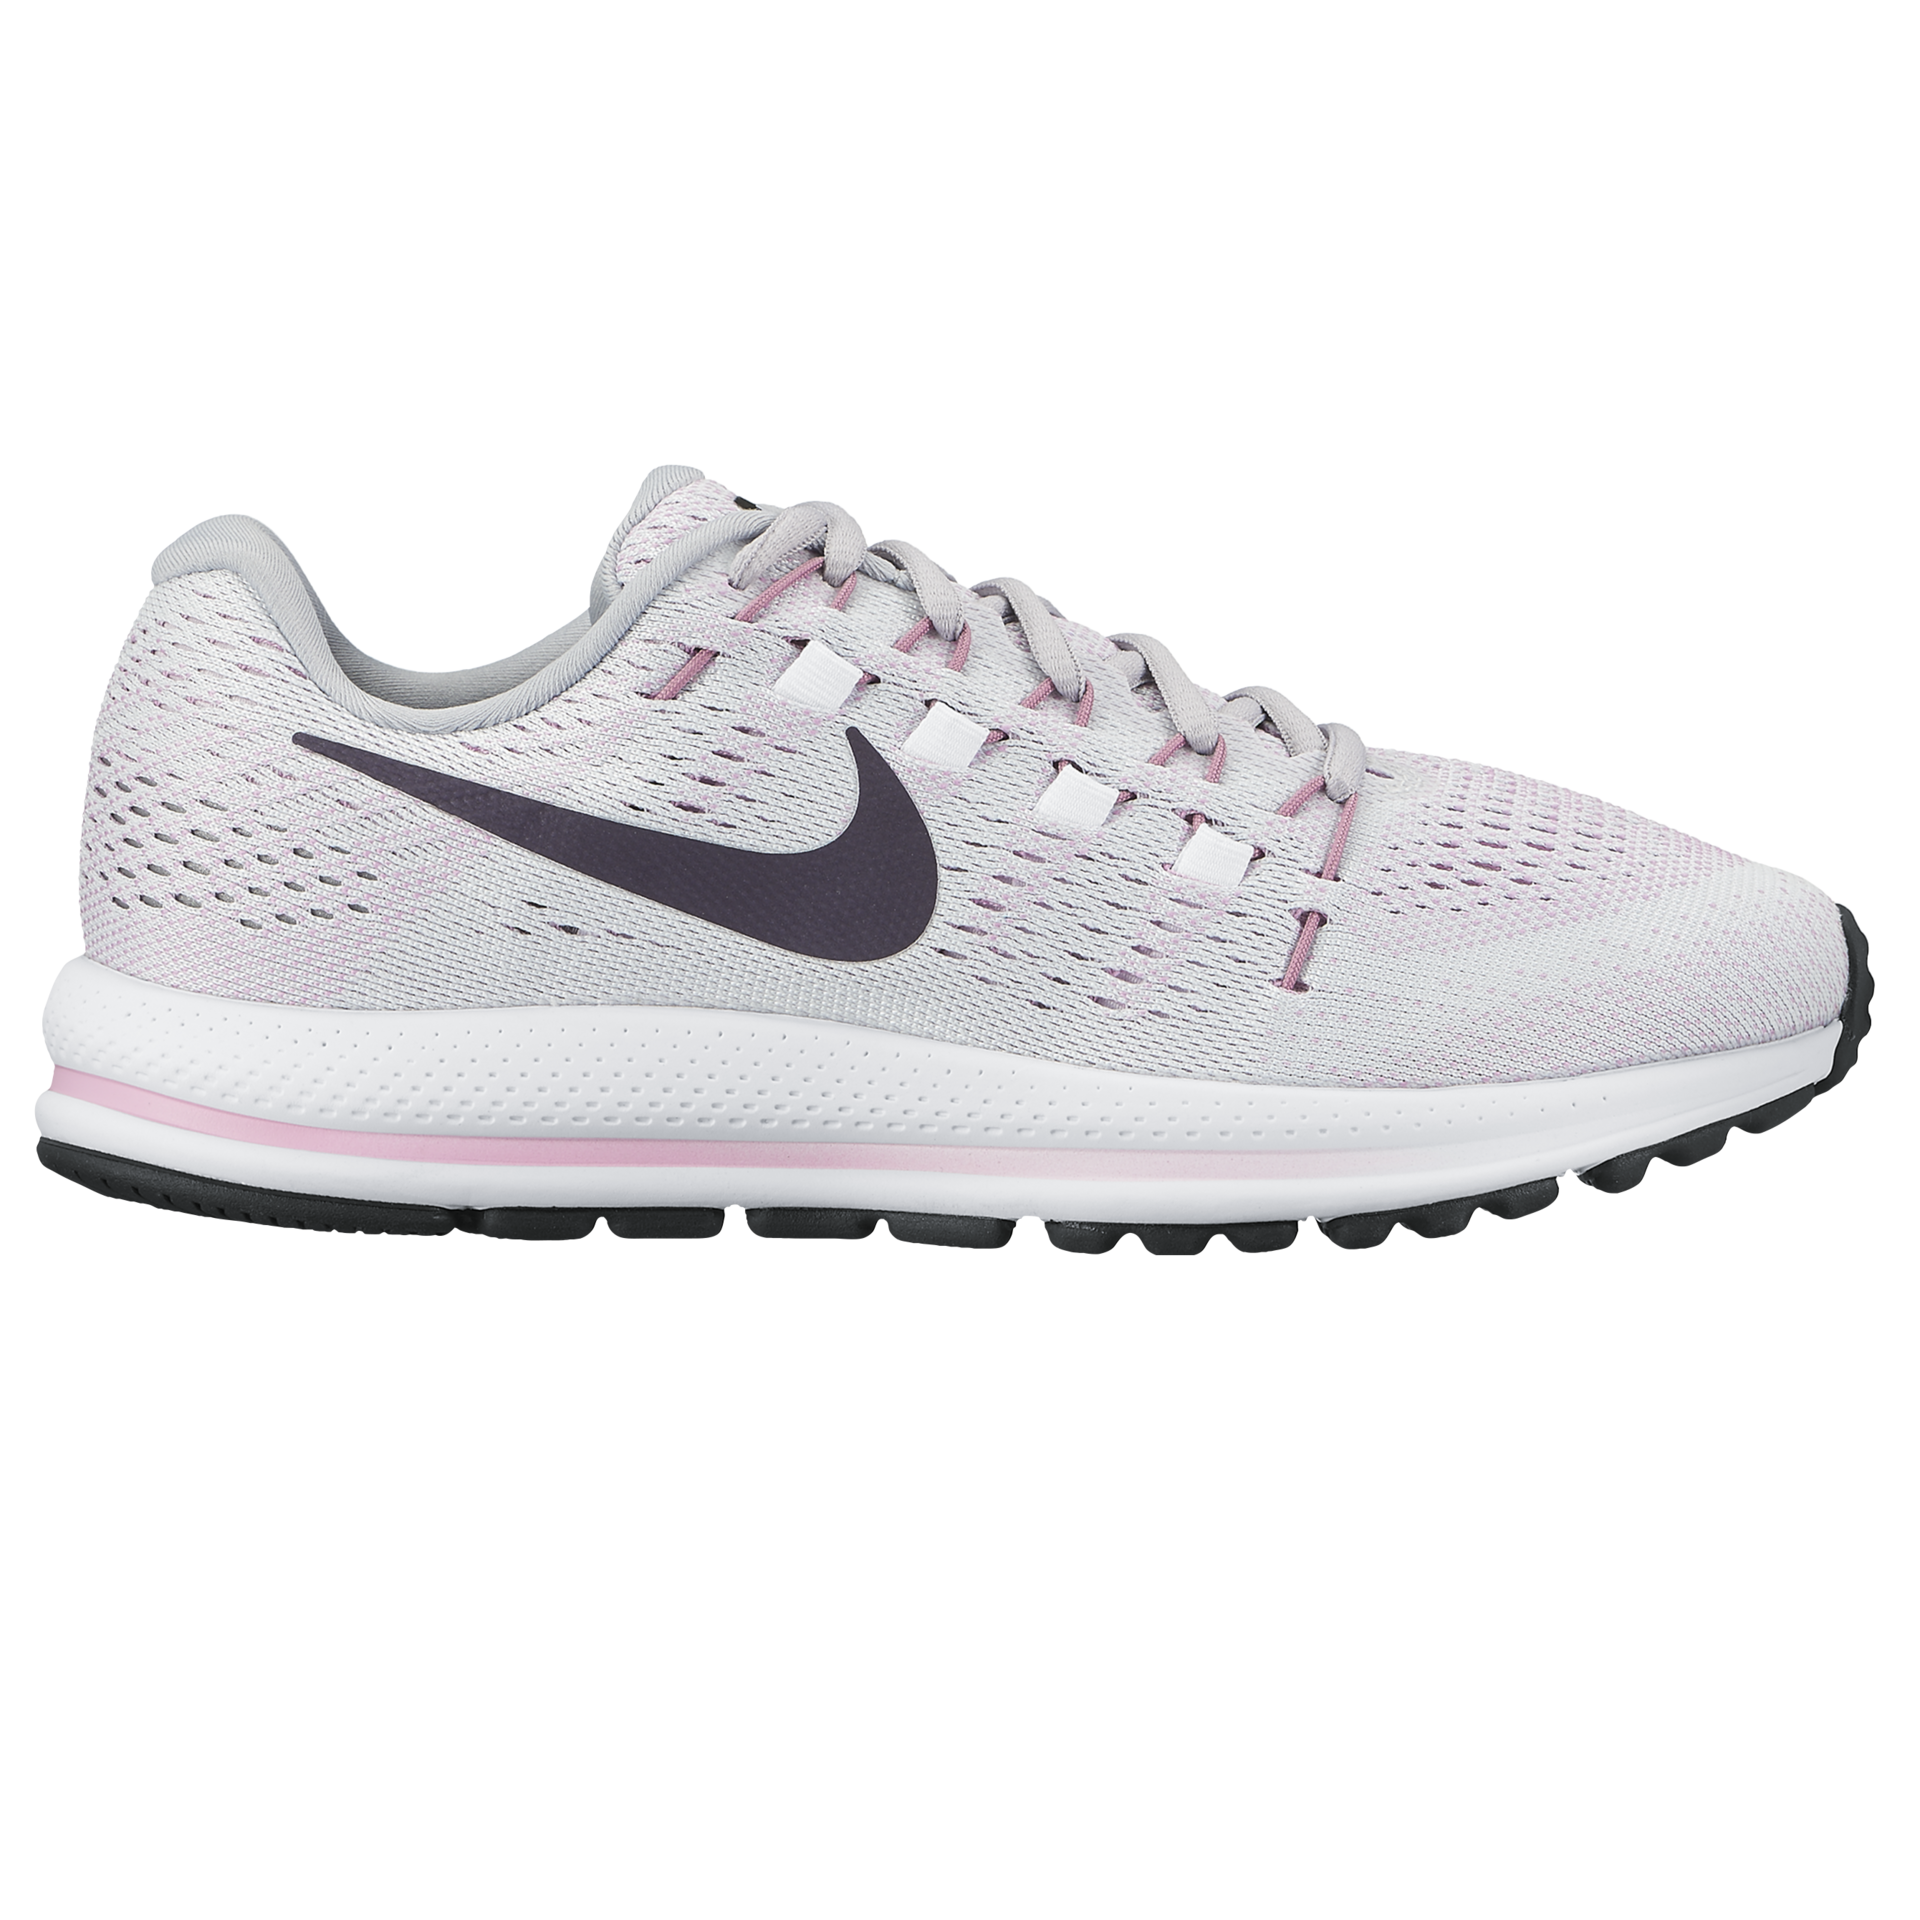 f0d37ce103f NIKE AIR ZOOM VOMERO 12 LADIES - Poobie Naidoos